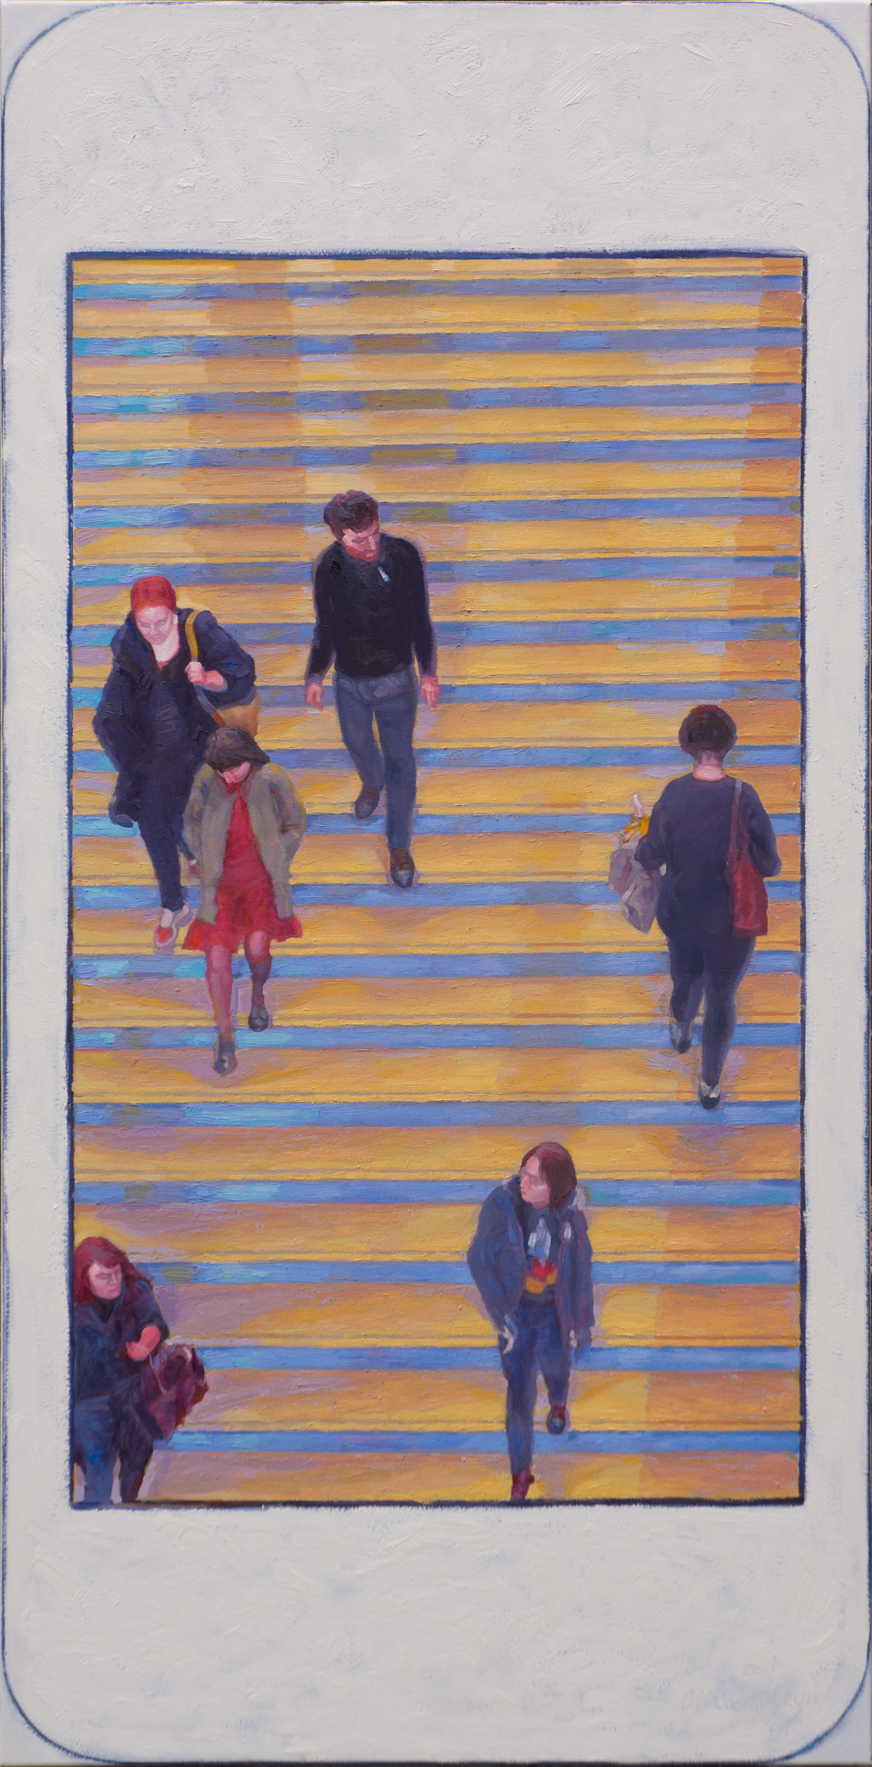 "Hashtag METmuseum grand staircase 1. Oil on canvas 24"" x 48"" 2015"